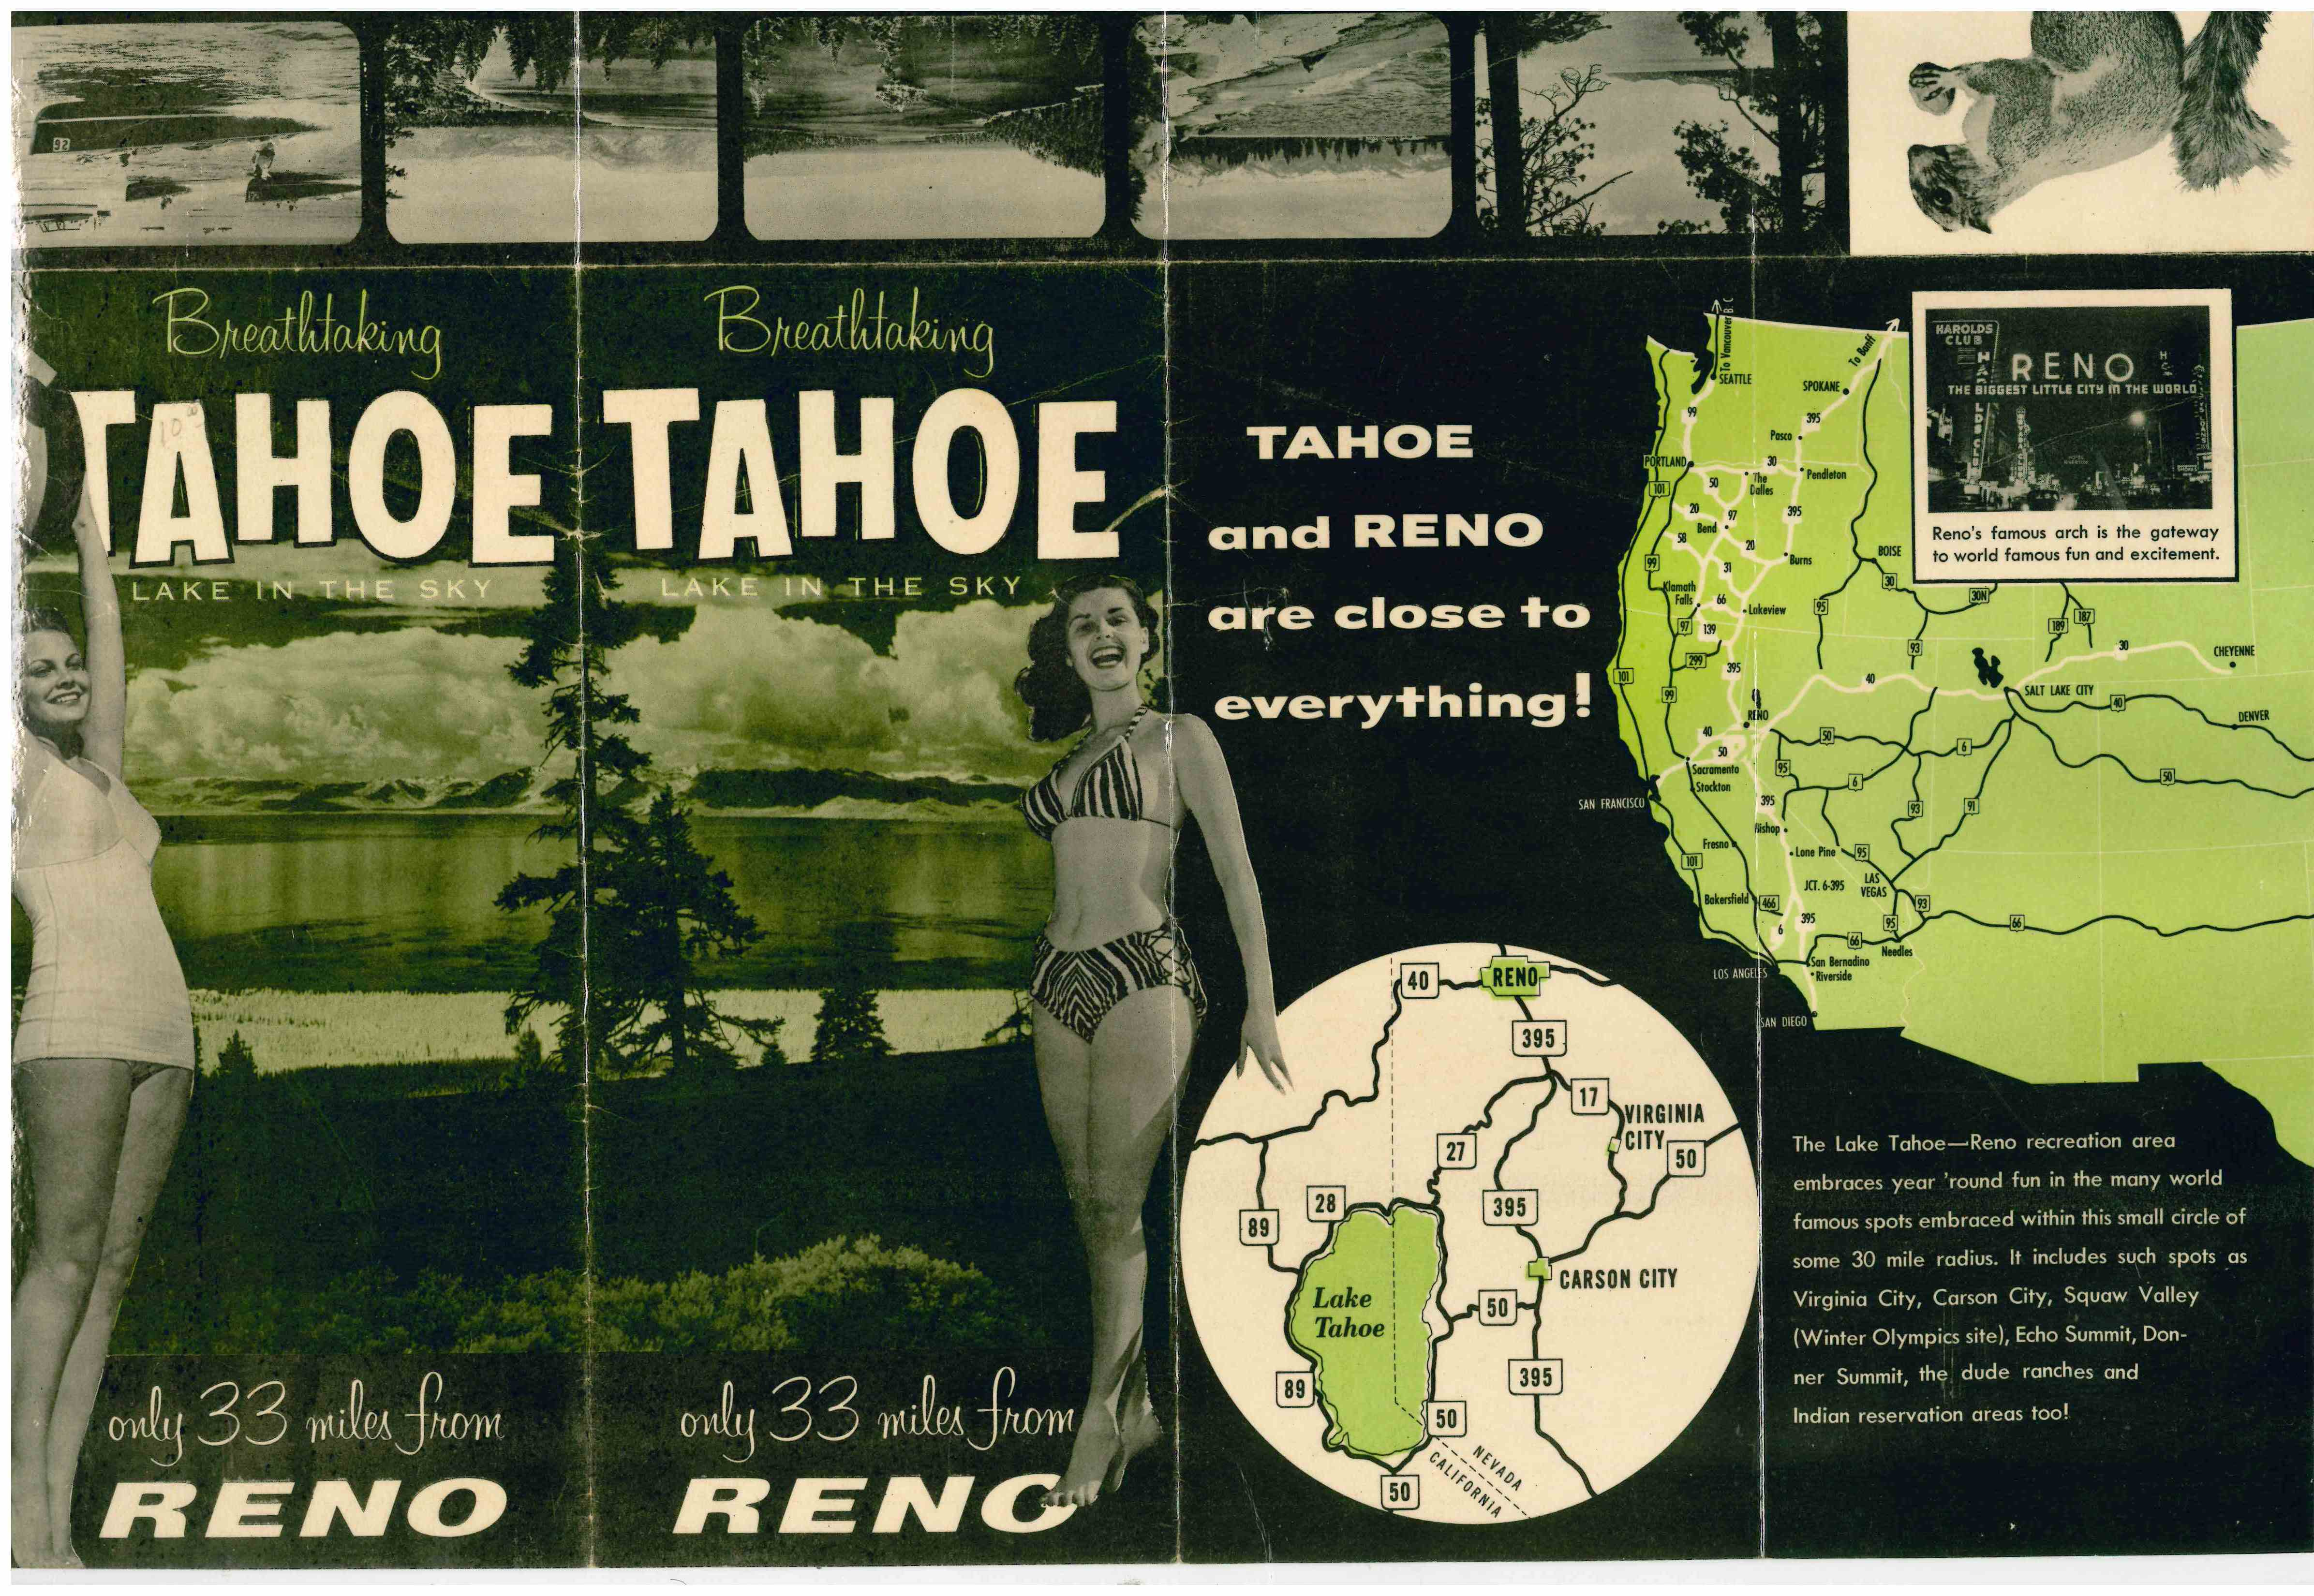 1965 Tahoe Travel Promotion